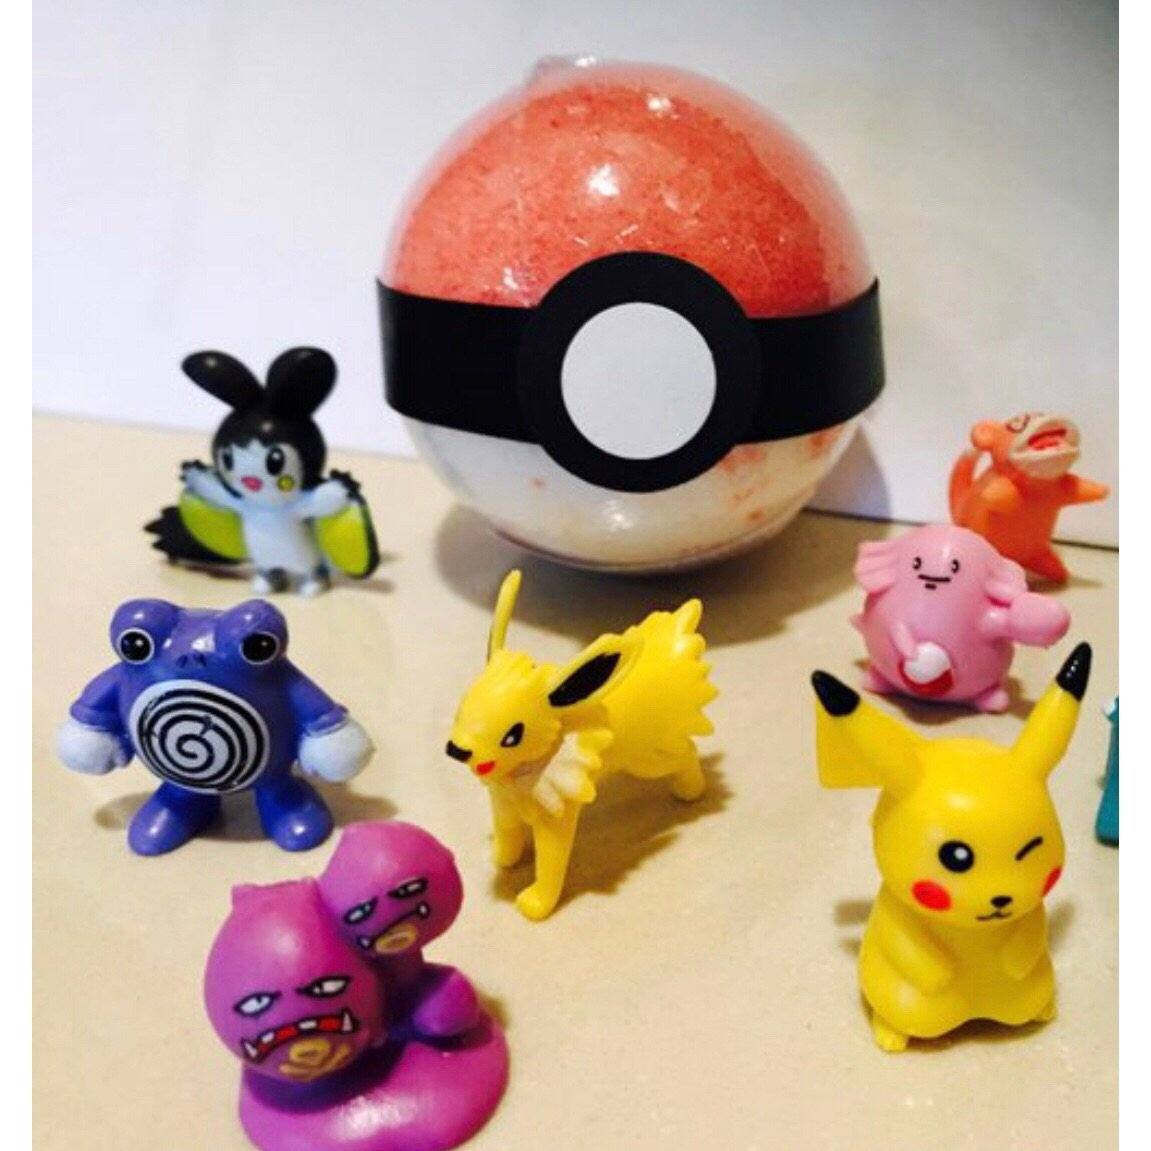 BATH FIZZY - SURPRISE POKEBALL, BATH, Crafted Bath - Bon + Co. Party Studio